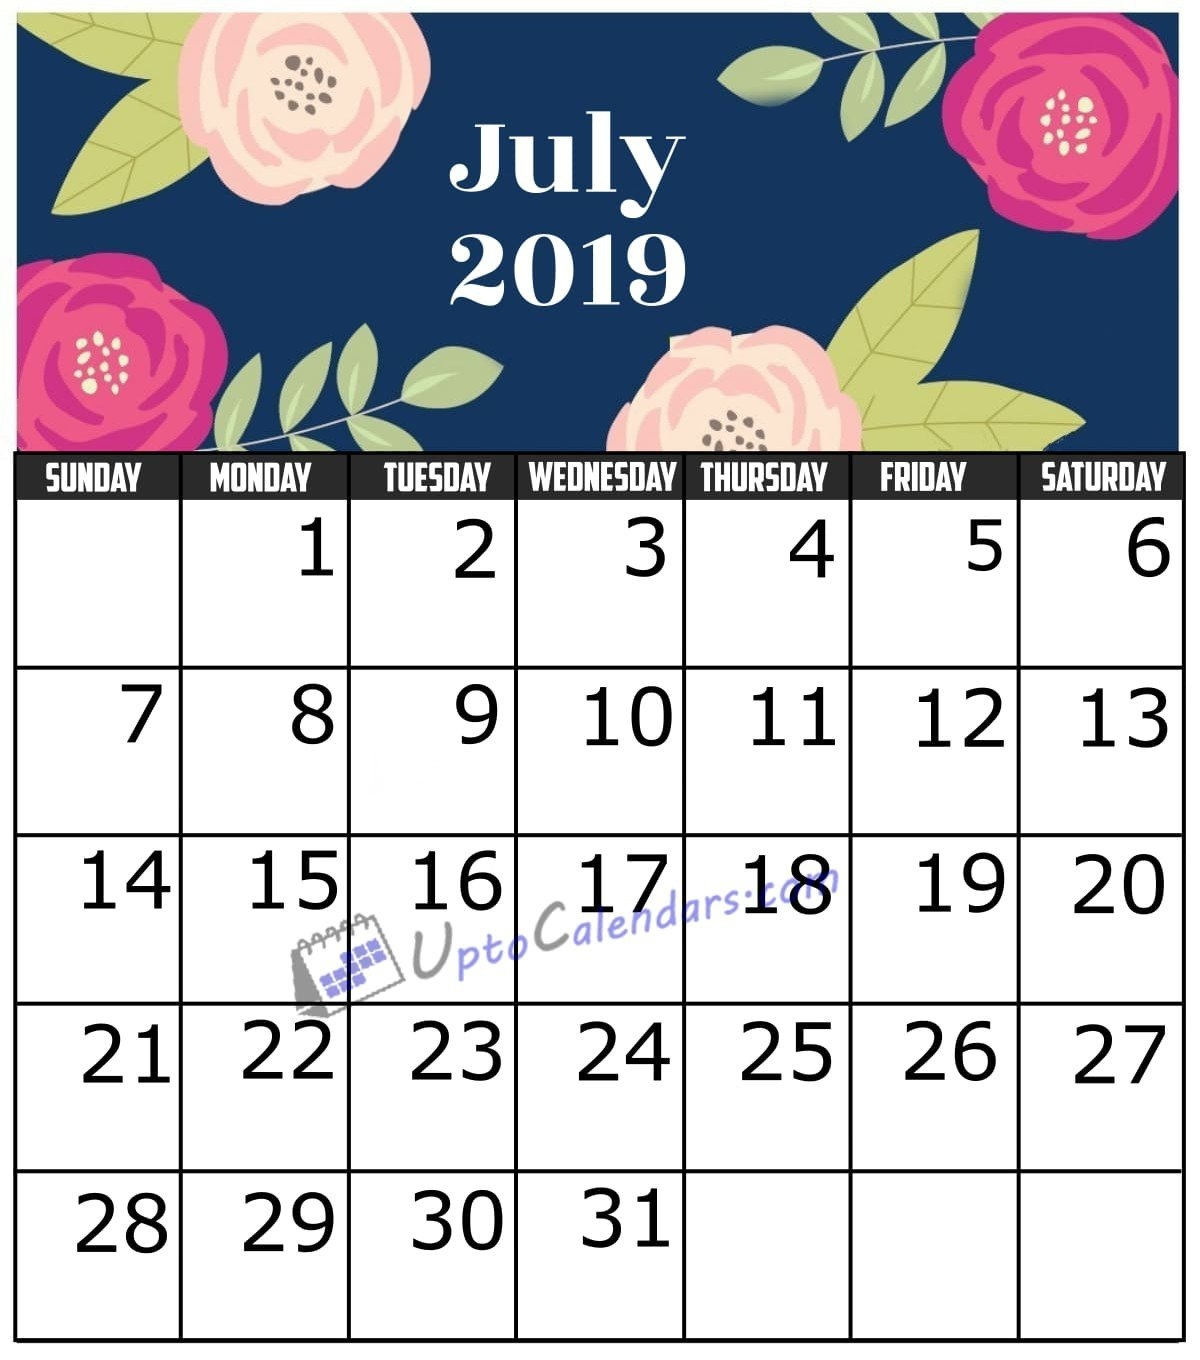 July 2019 Calendar Printable Template With Holidays Pdf Word Excel July 7 2019 Calendar